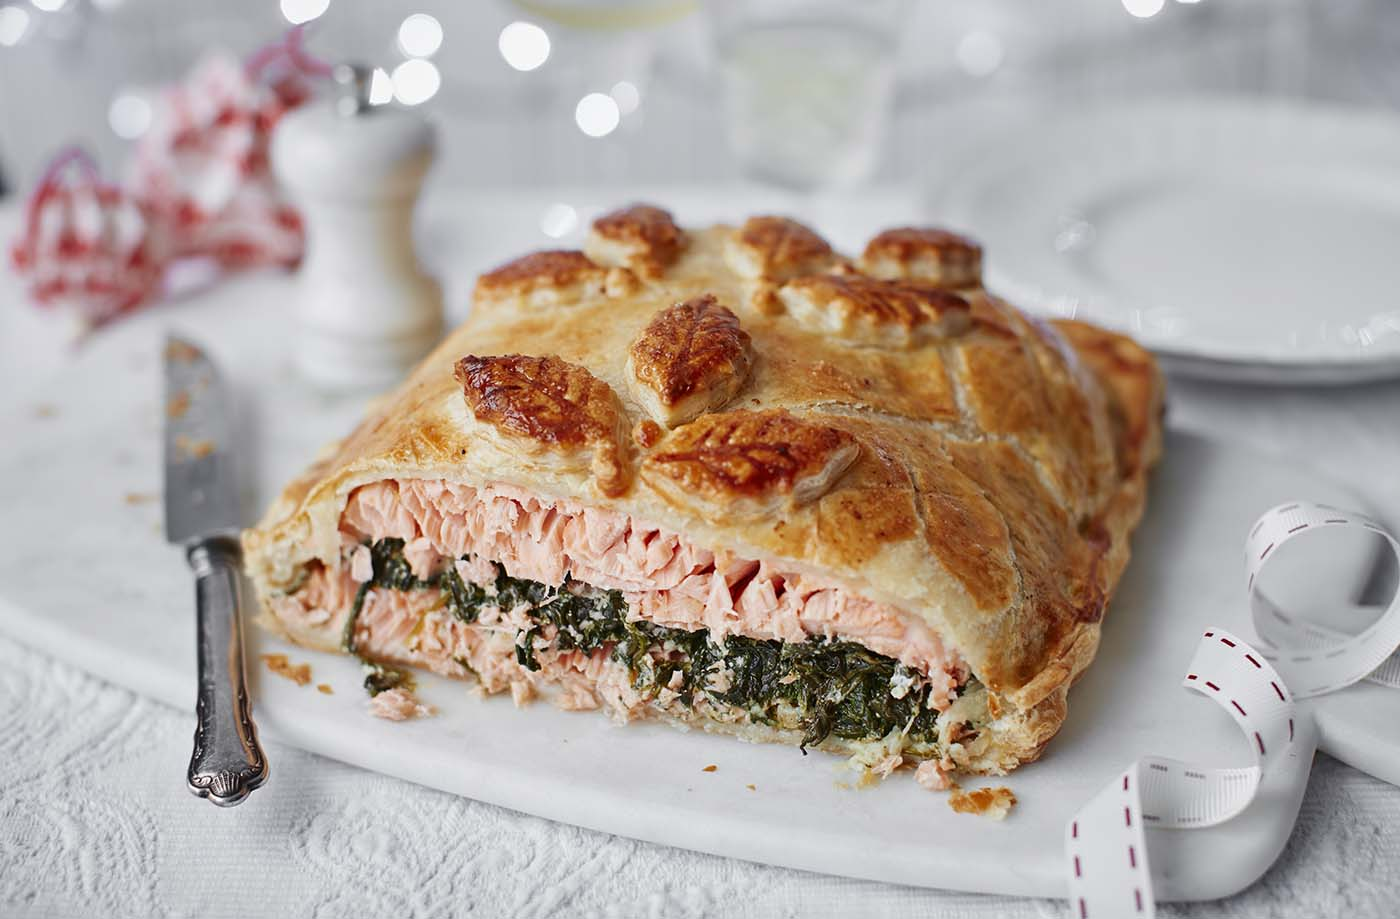 Salmon en croute with spinach and almonds